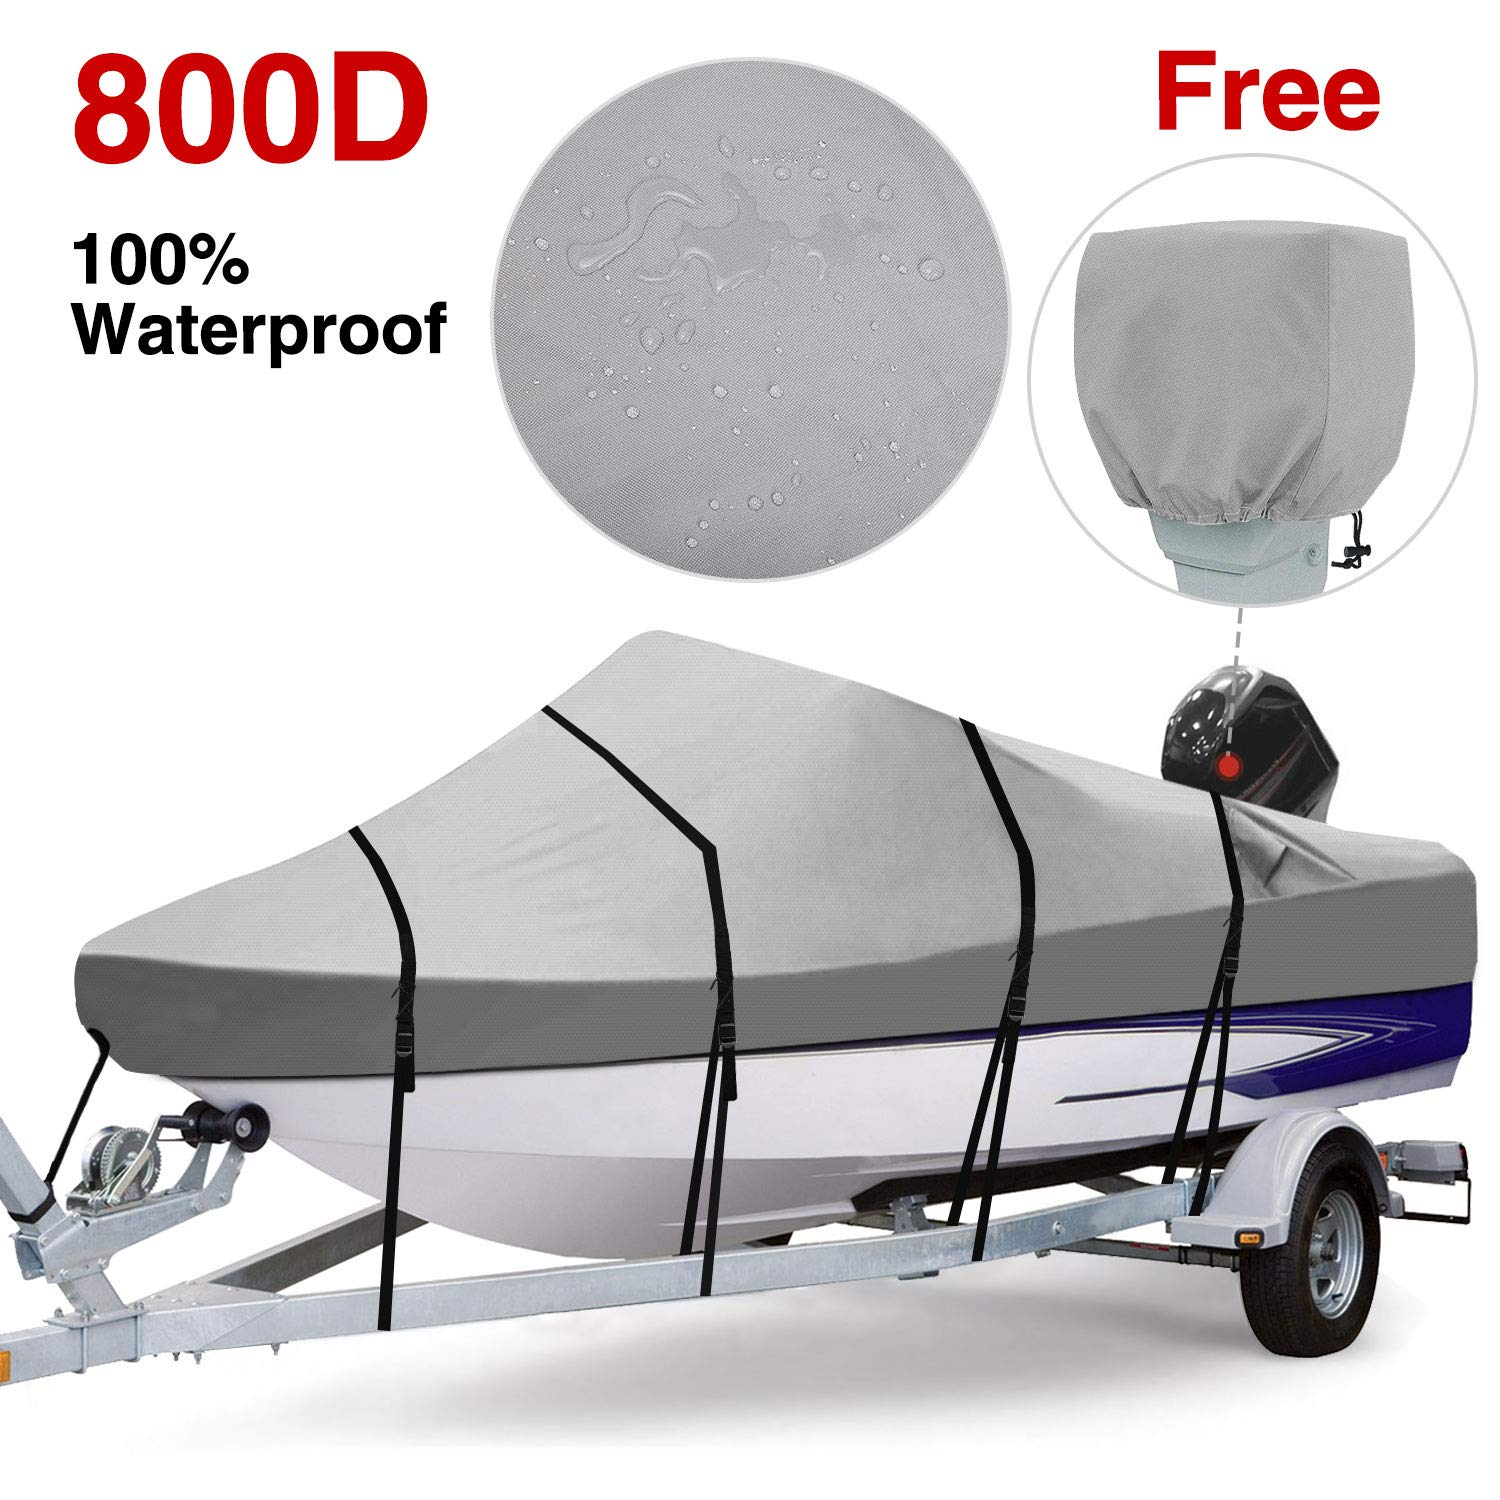 20-22L V-Hull Runabouts Outboards and I//O Bass Boats Free Motor Cover RVMasking Trailerable Full Size Boat Cover Lightweight /& Waterproof for 17-19